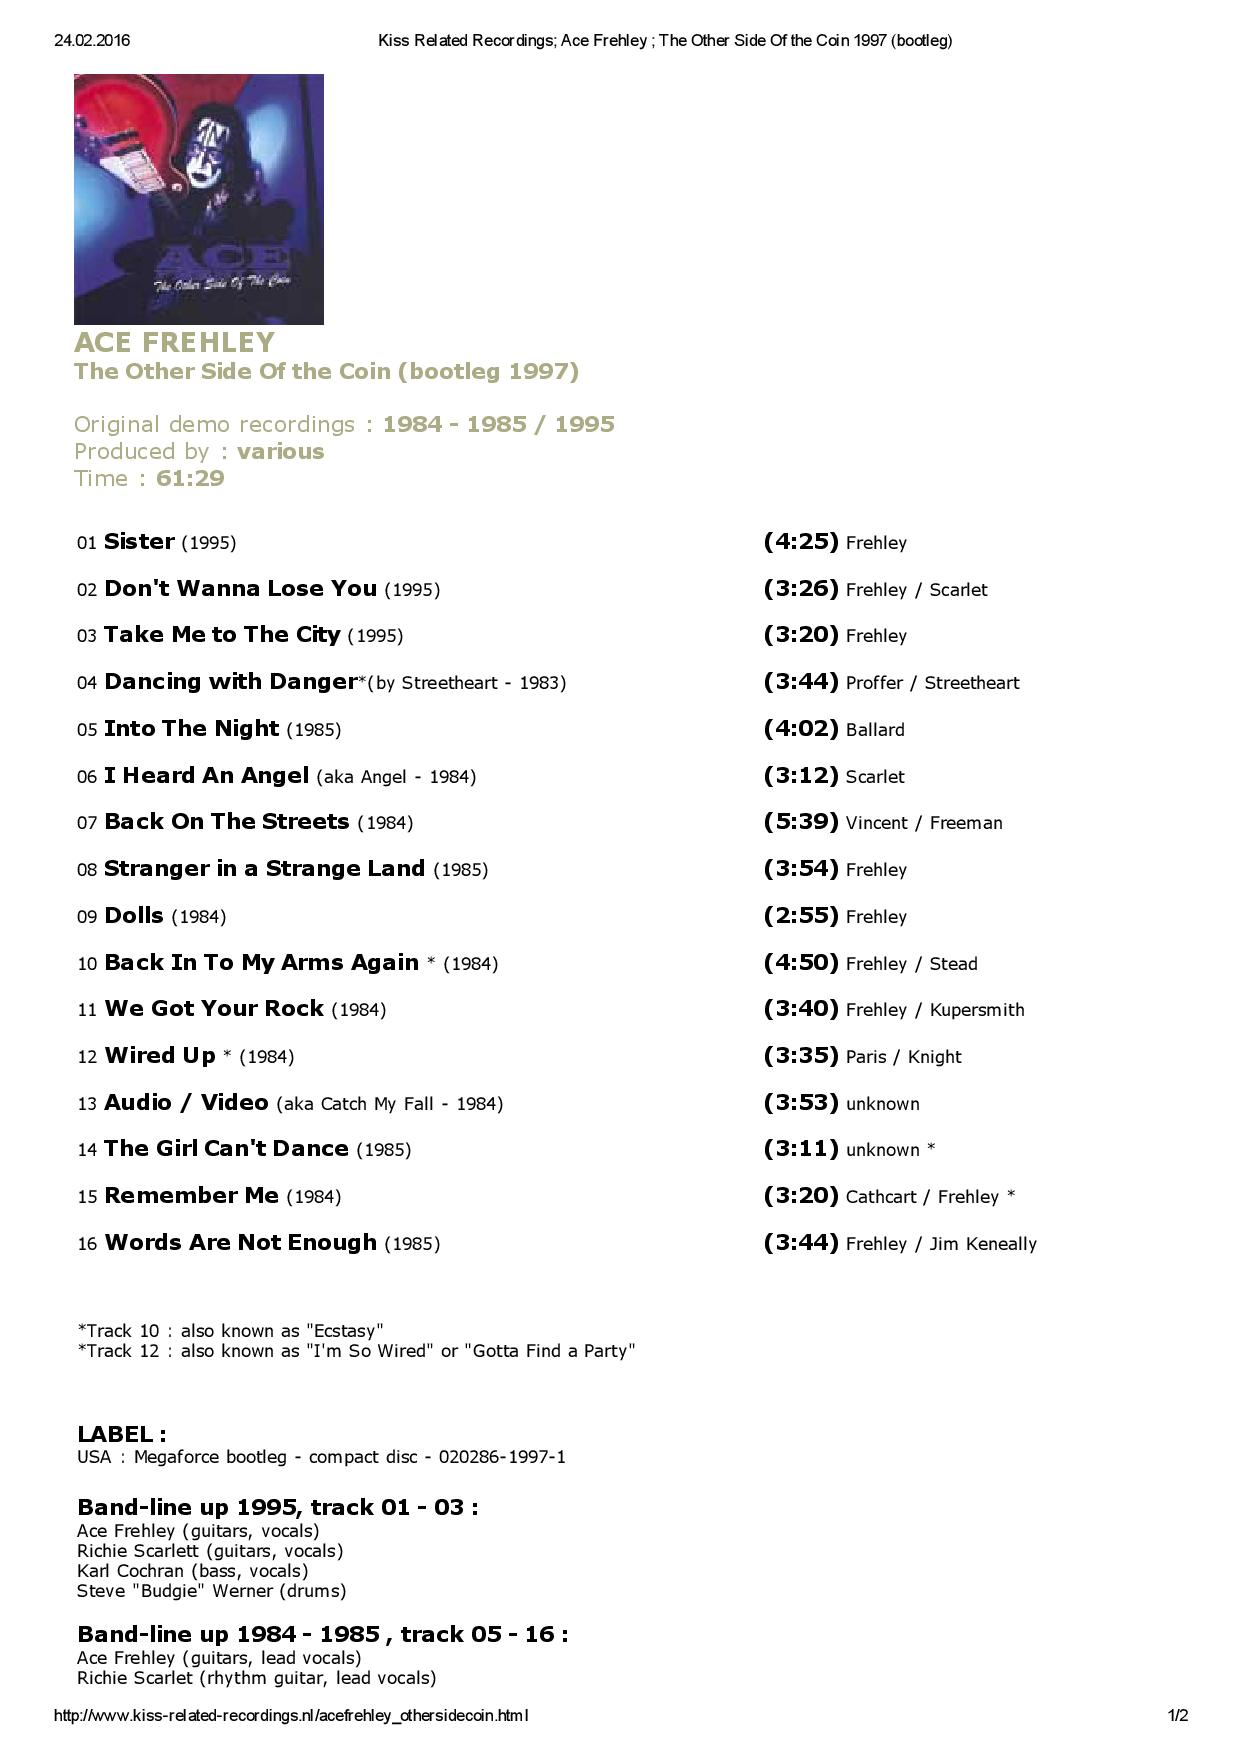 Kiss Related Recordings; Ace Frehley ; The Other Side Of the Coin 1997 (bootleg)-page-001.jpg